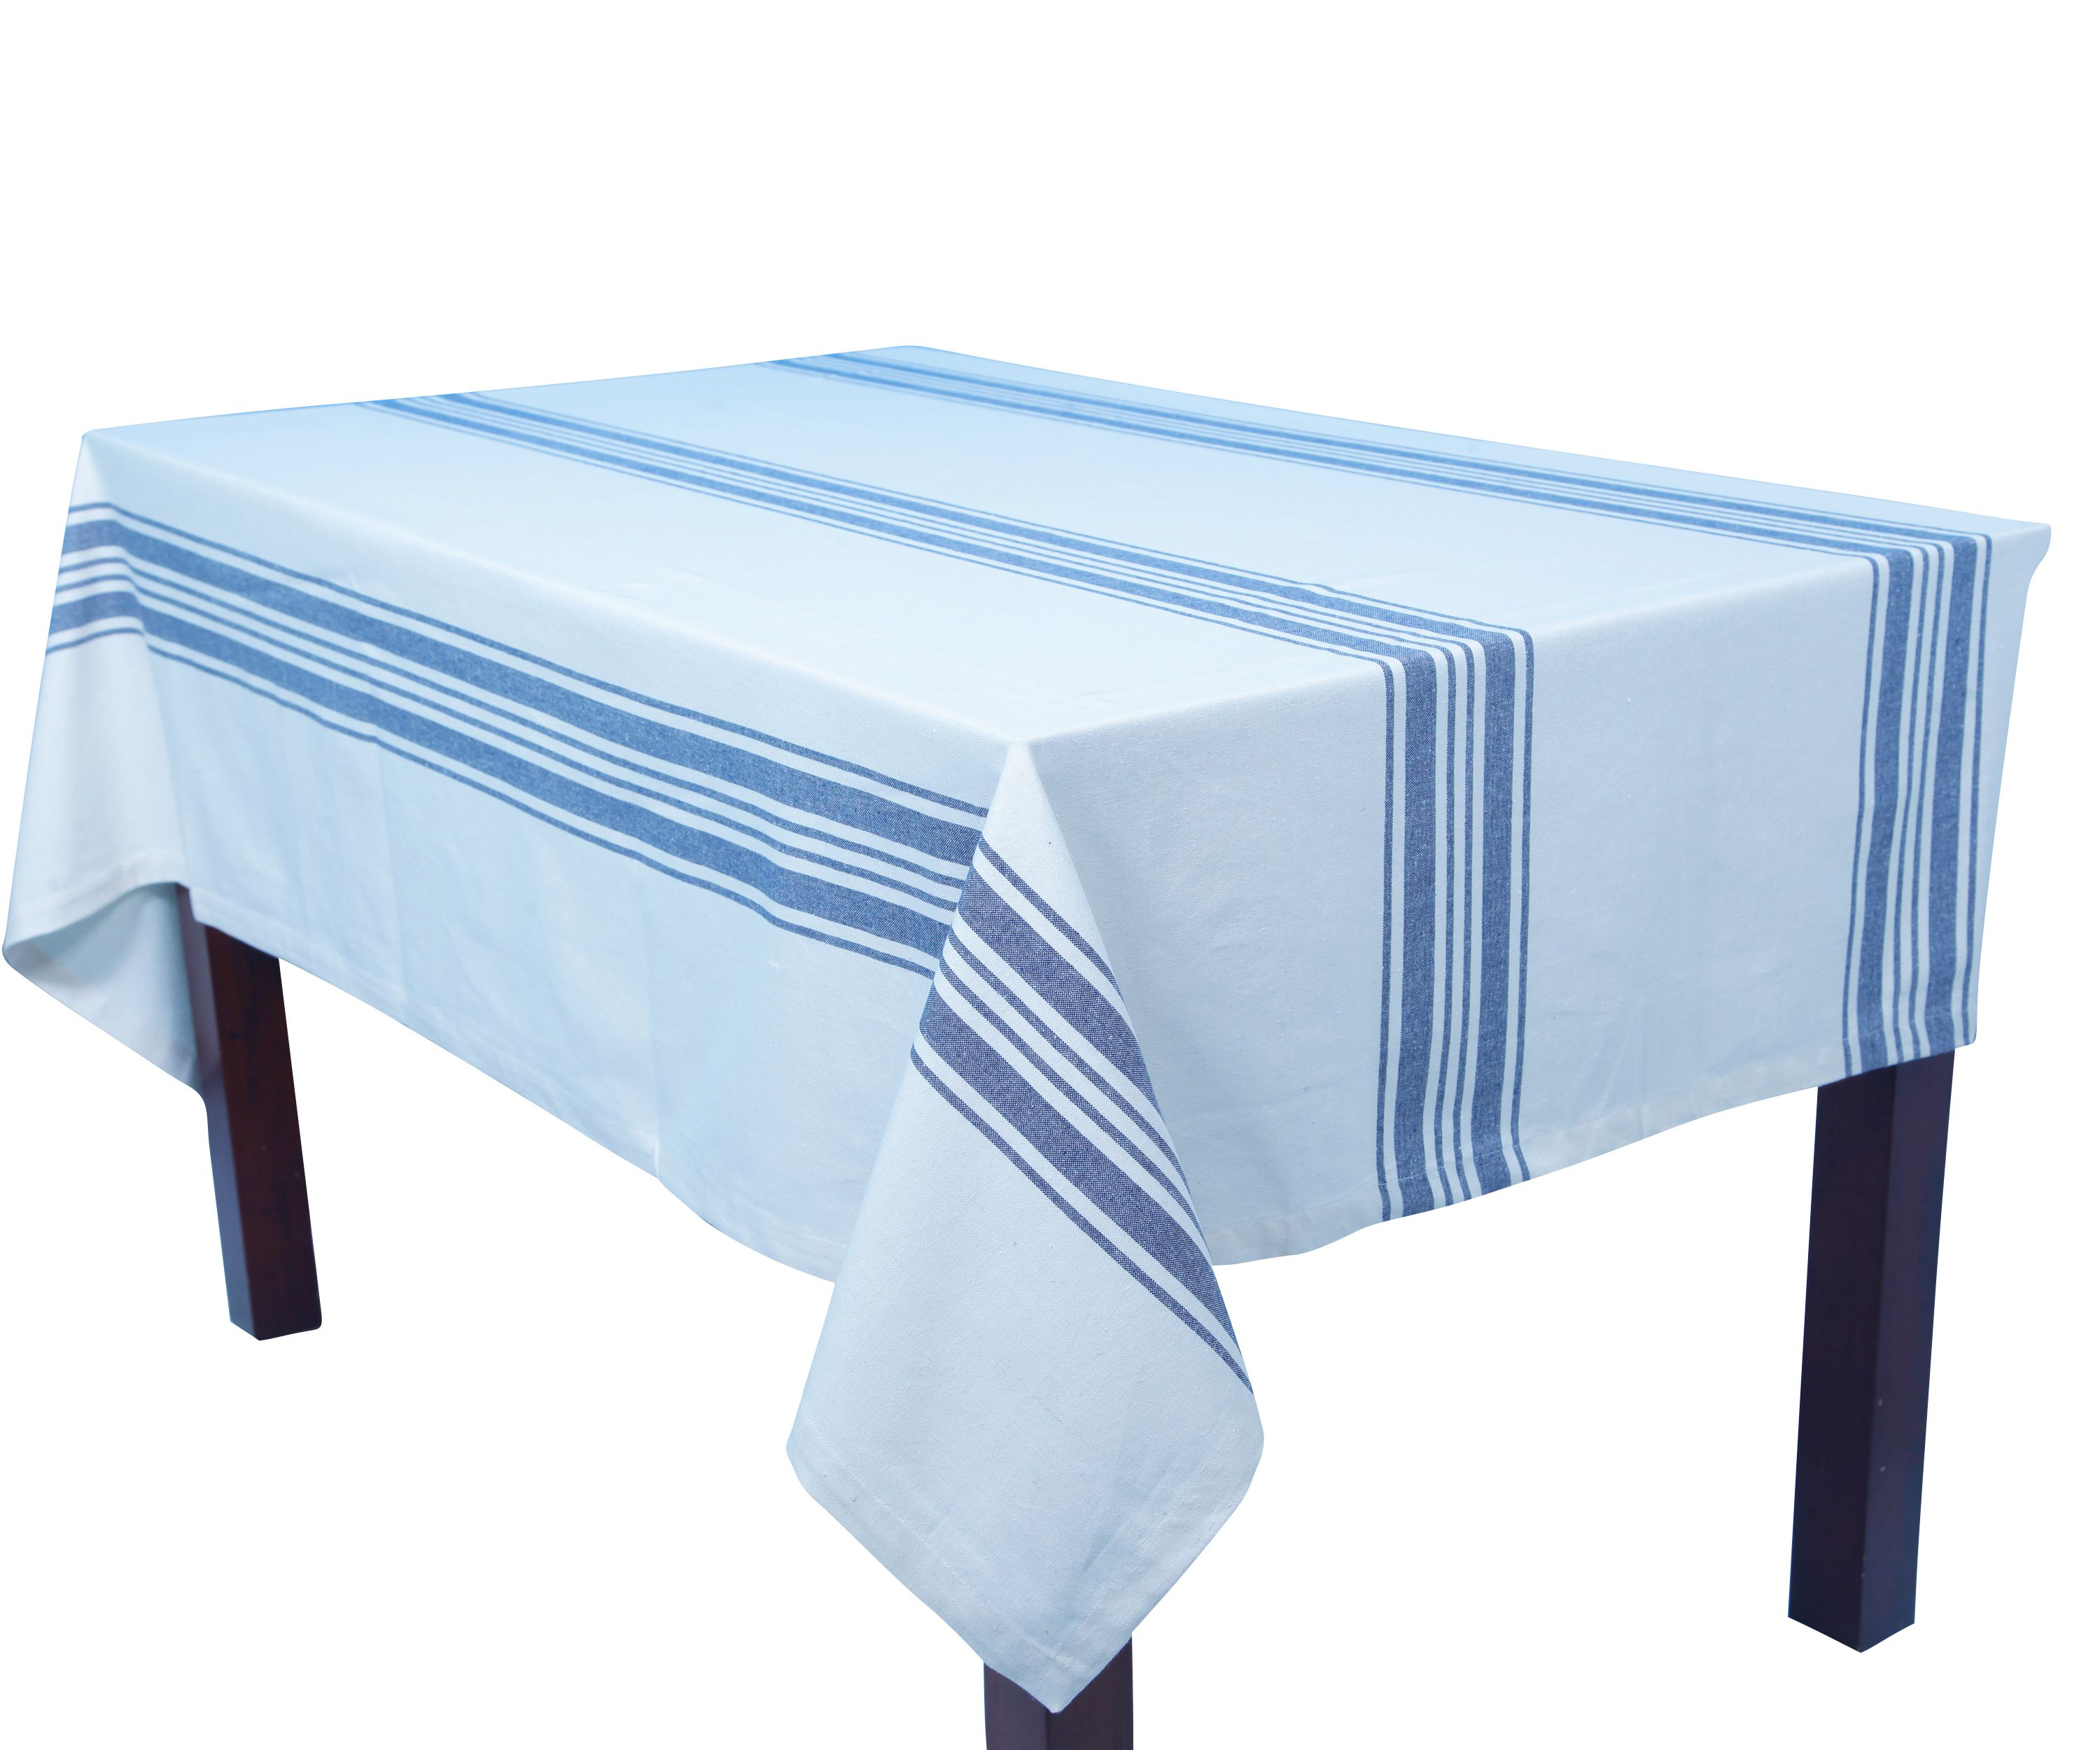 25 65 Country Stripes Kitchen Tablecloth For Christmas Decoration Blue Striped Tablecloth Striped Tablecloths Farmhouse Tablecloths